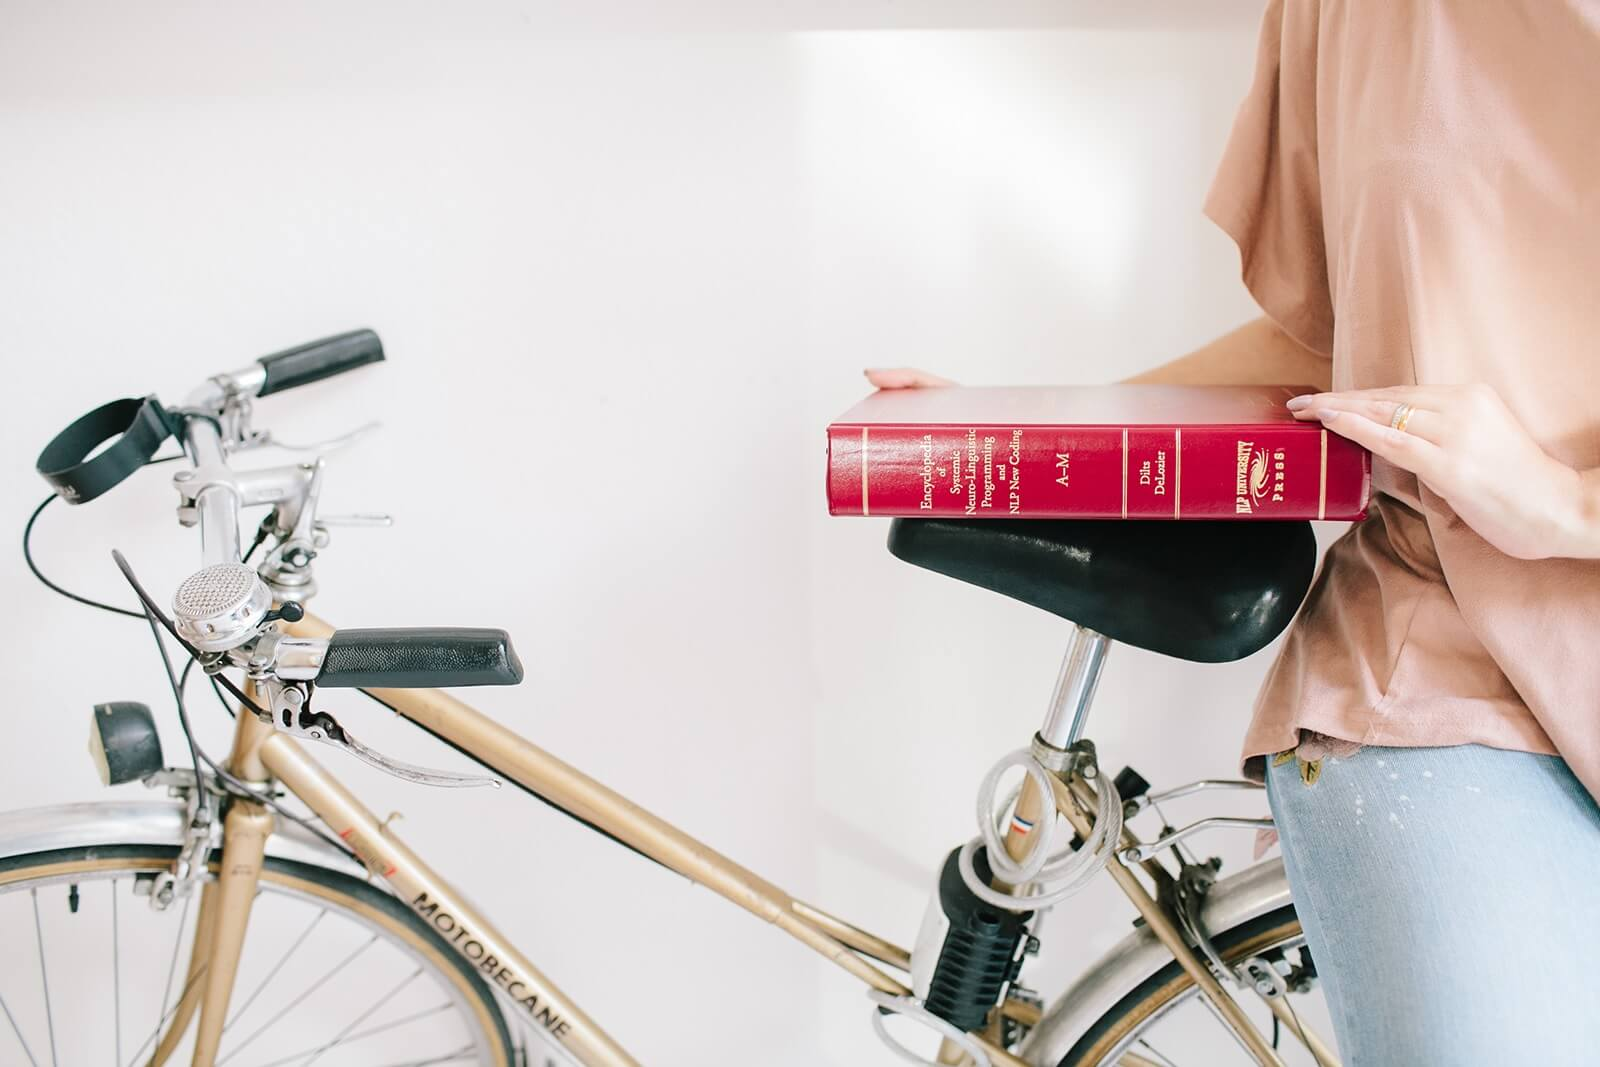 NLP book over bicycle seat as a simple life with presence